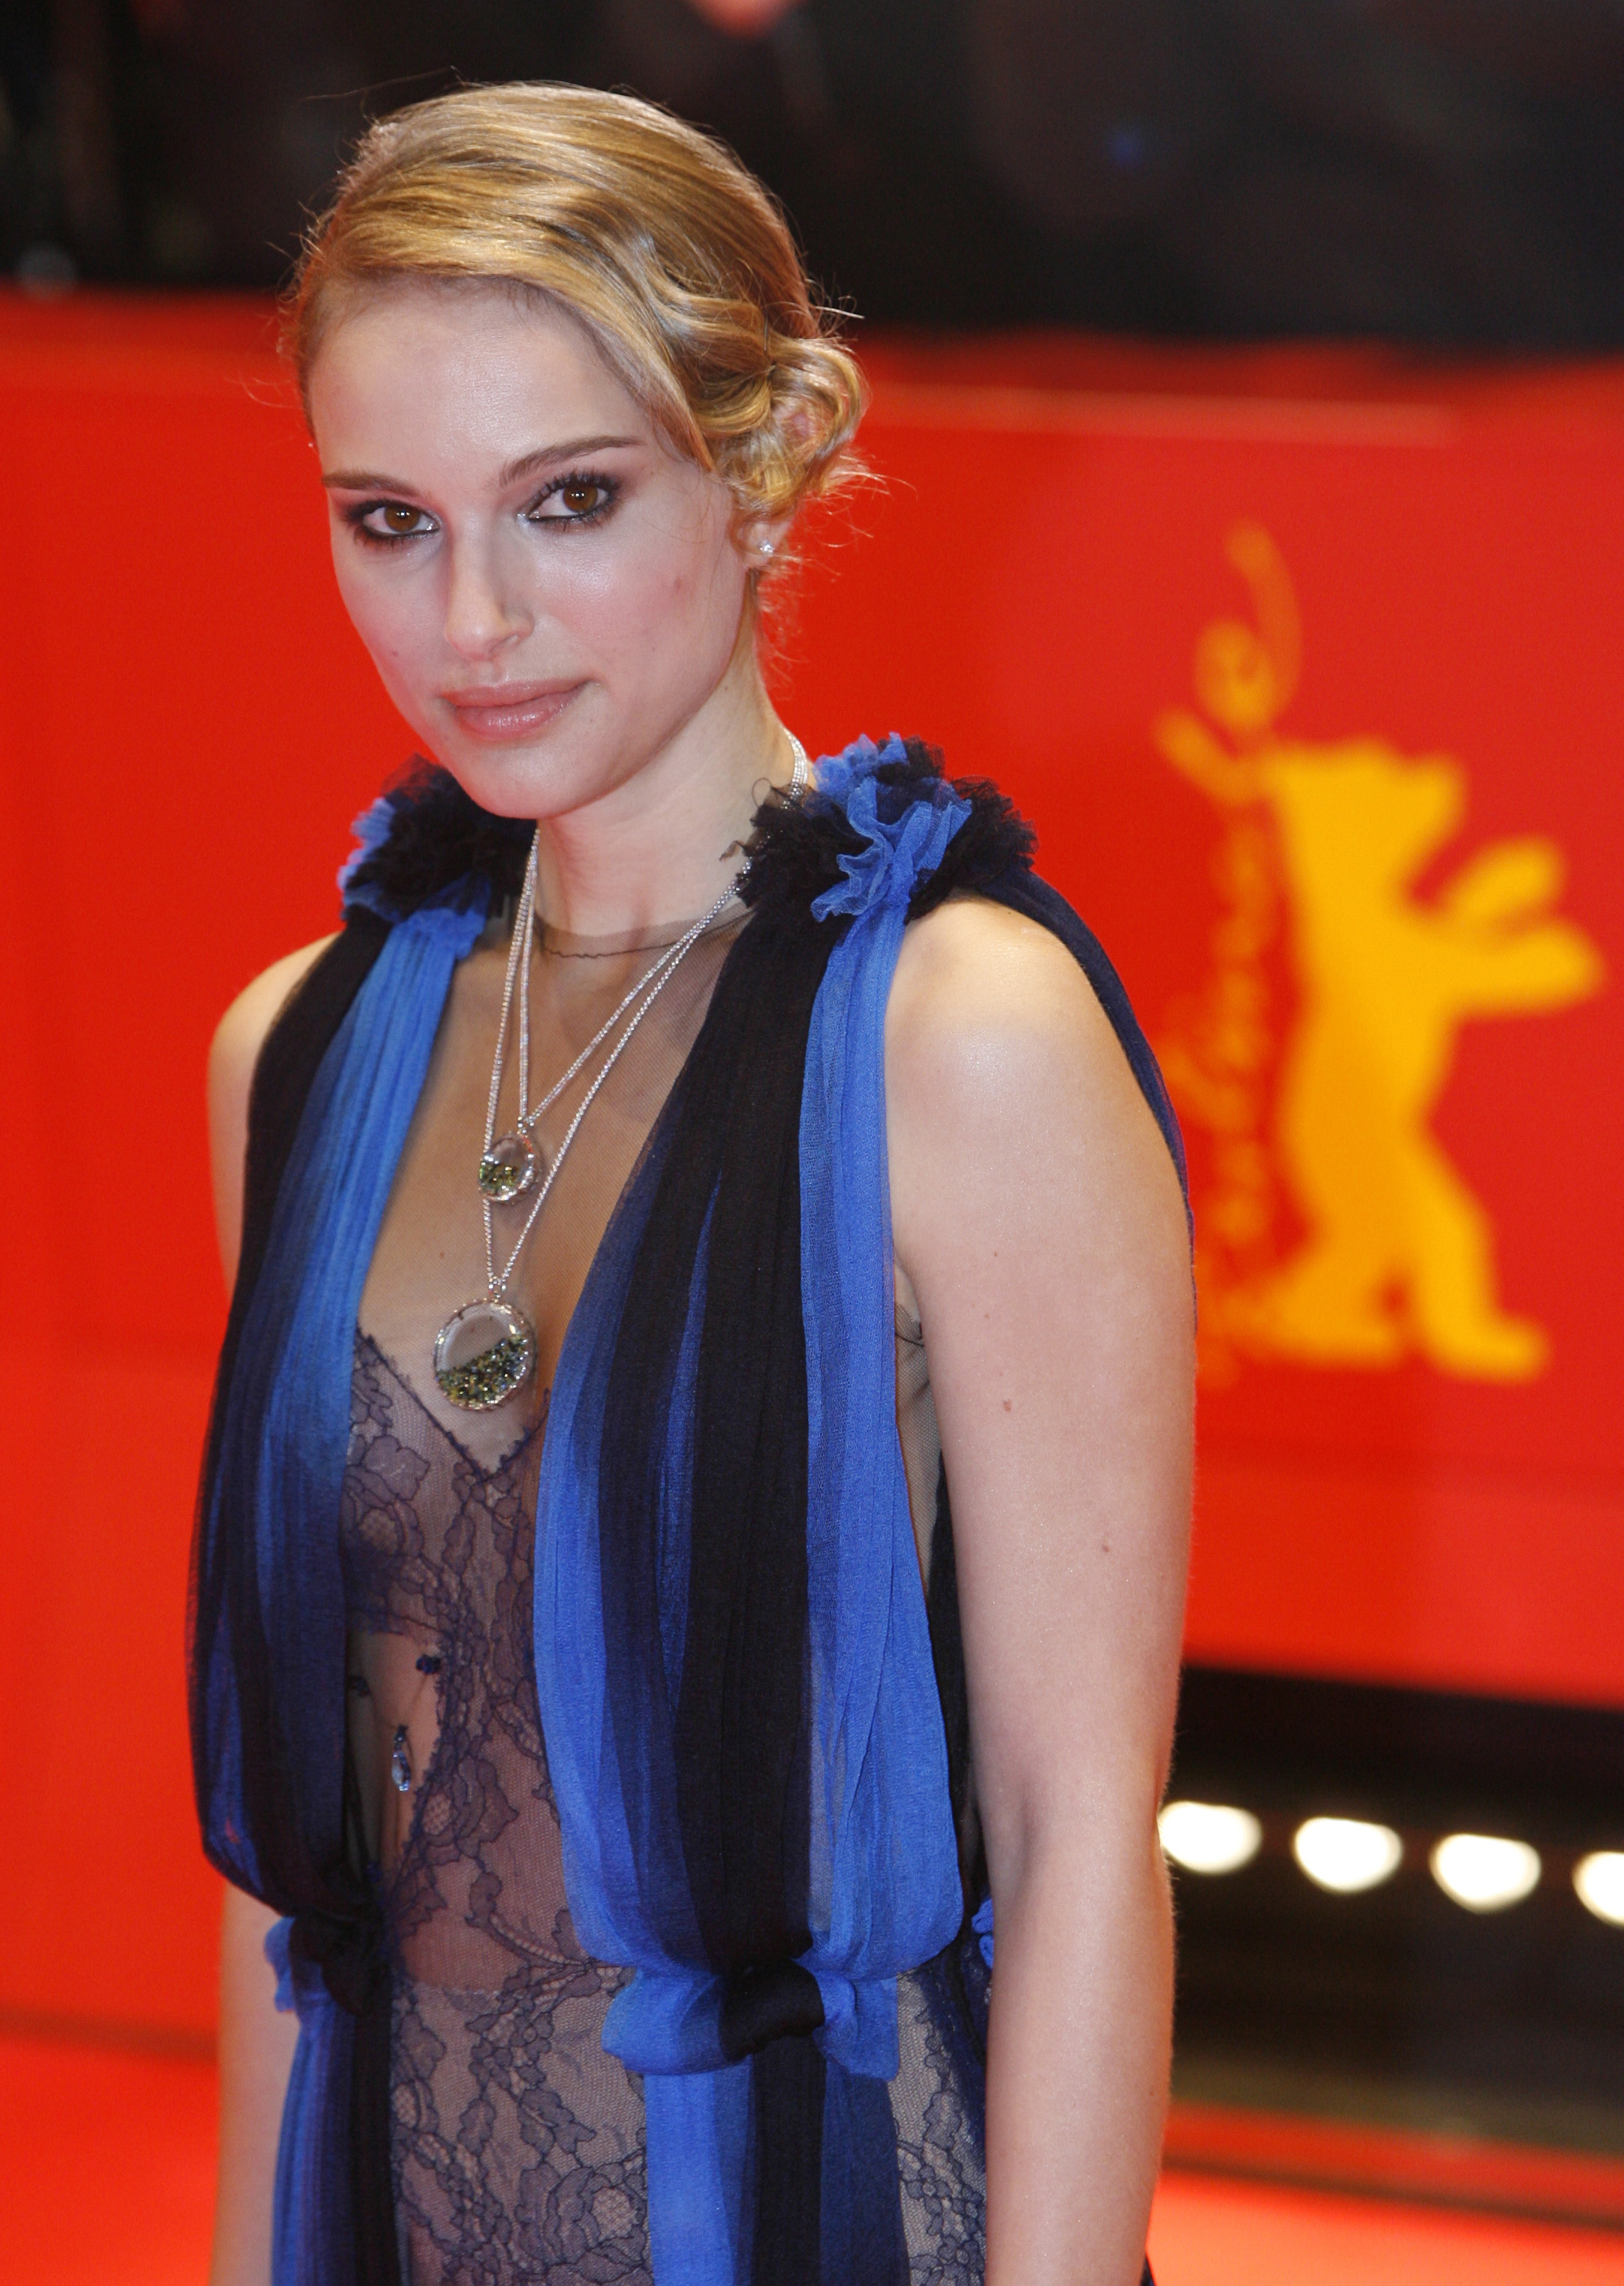 16079_Natalie_Portman-The_Other_Boleyn_Girl_Premiere_122_439lo.jpg